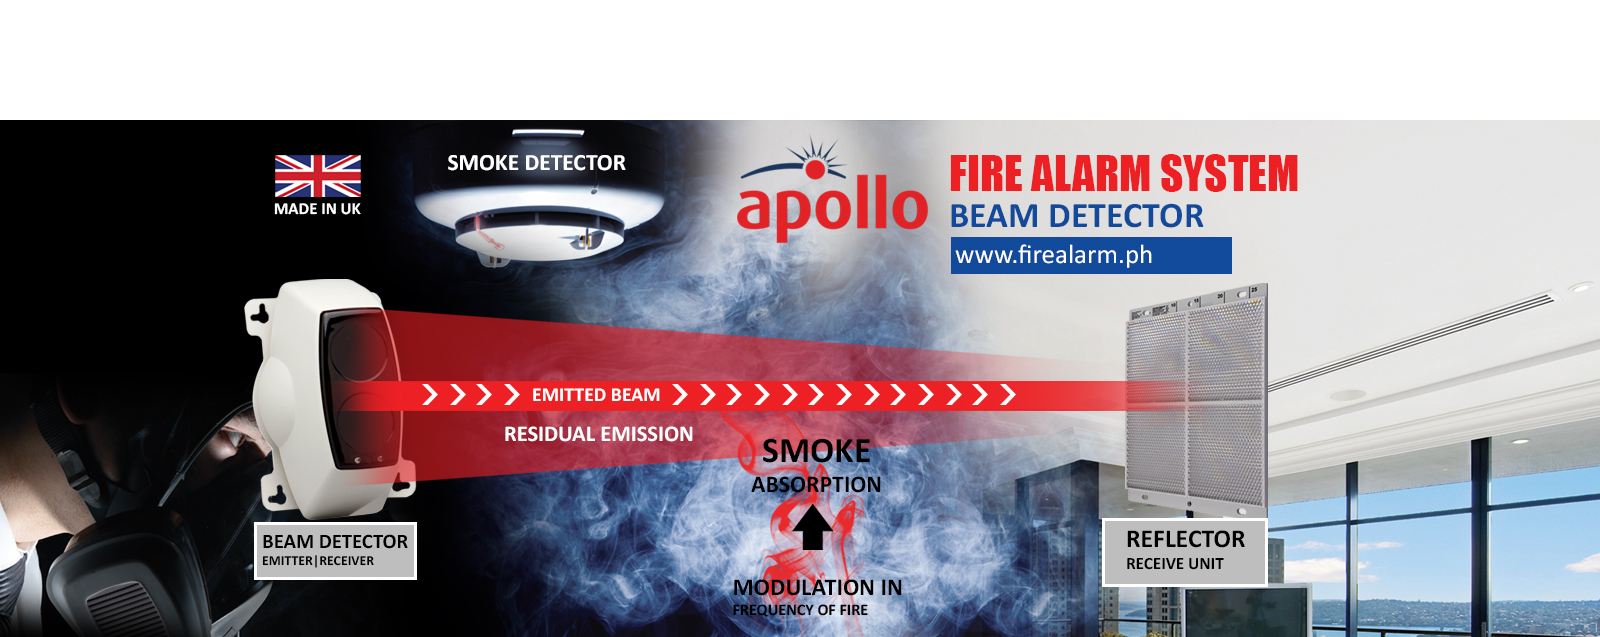 Fire Alarm Philippines Apollo Addressable Smoke Detector Wiring Diagram Detection System